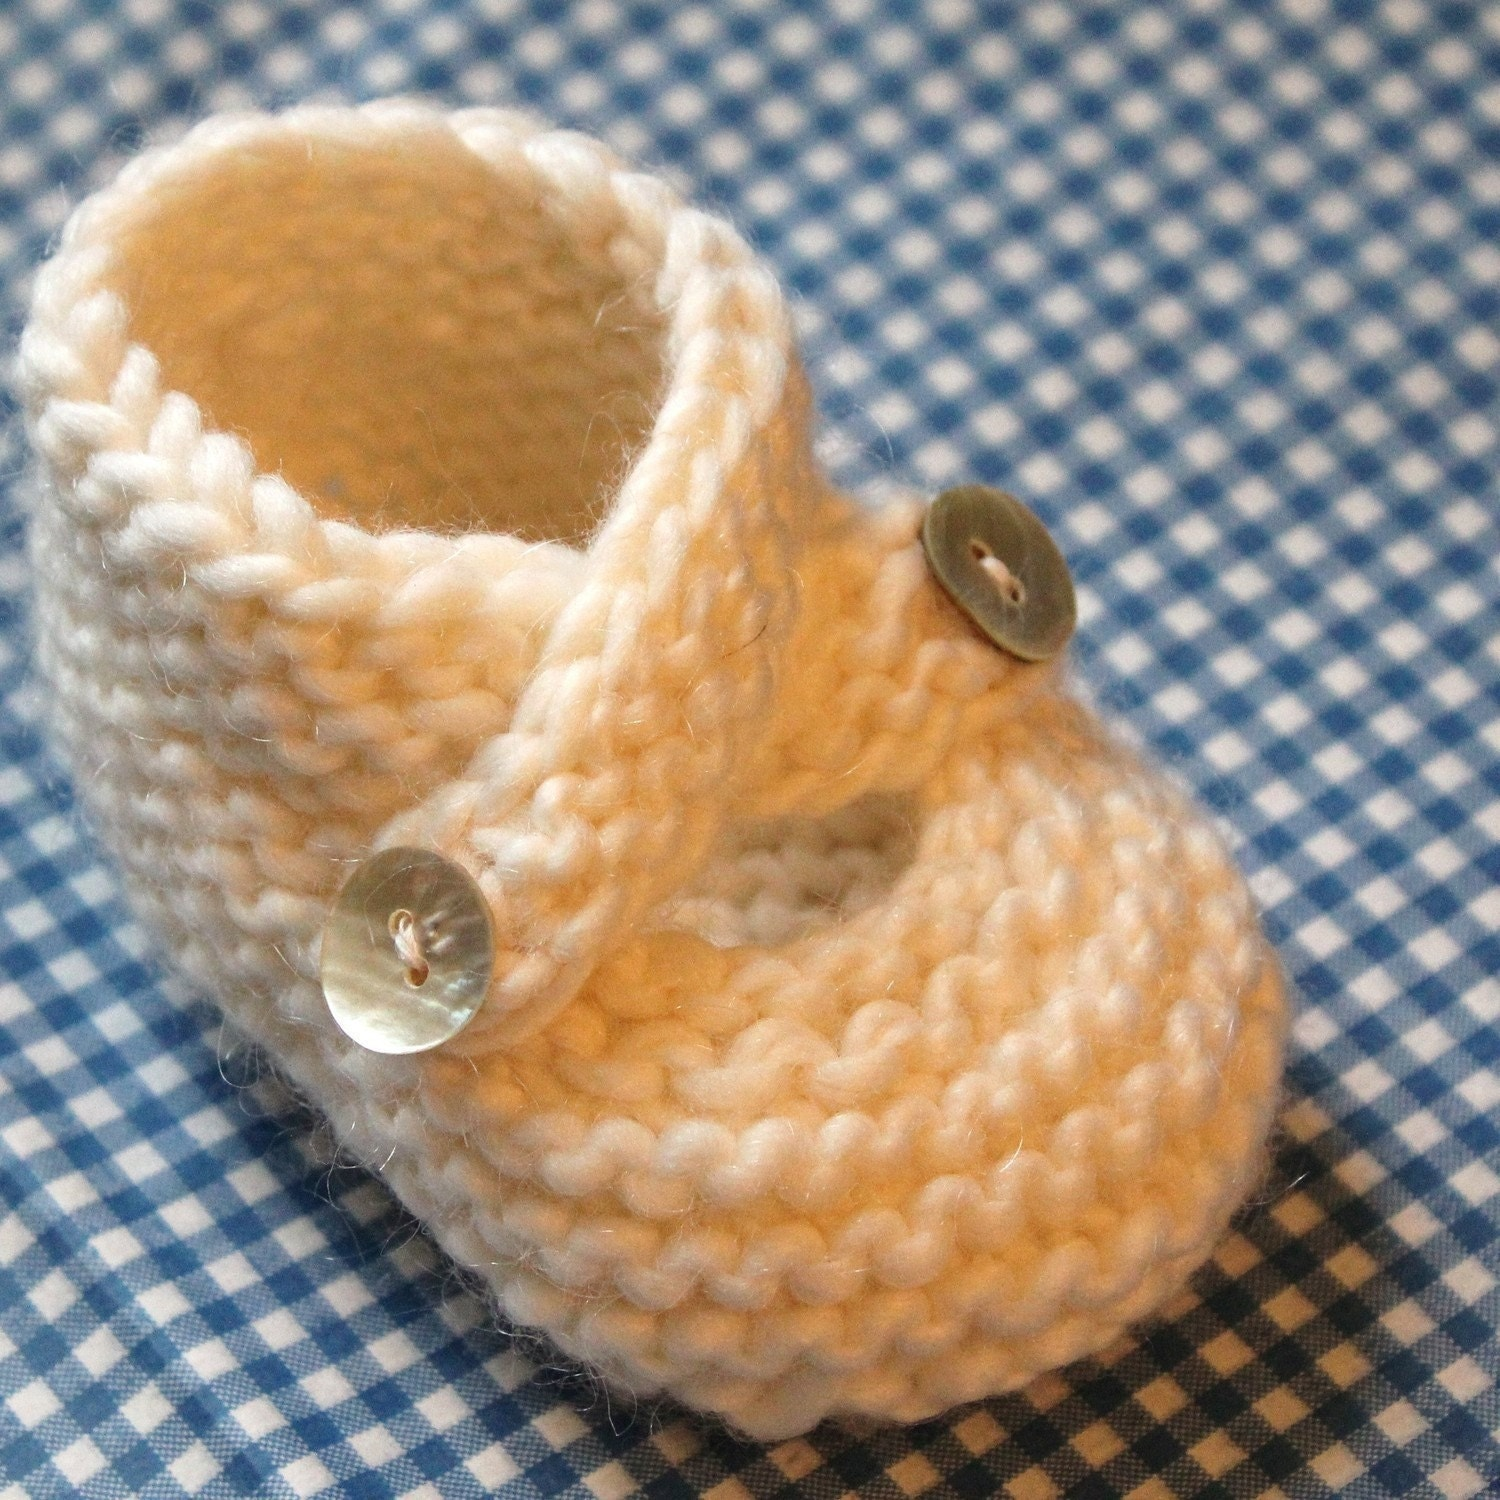 Knitting Patterns For Baby Booties Beginner : PATTERN Baby Booties Knitting Pattern Knit by AbsoluteKnits